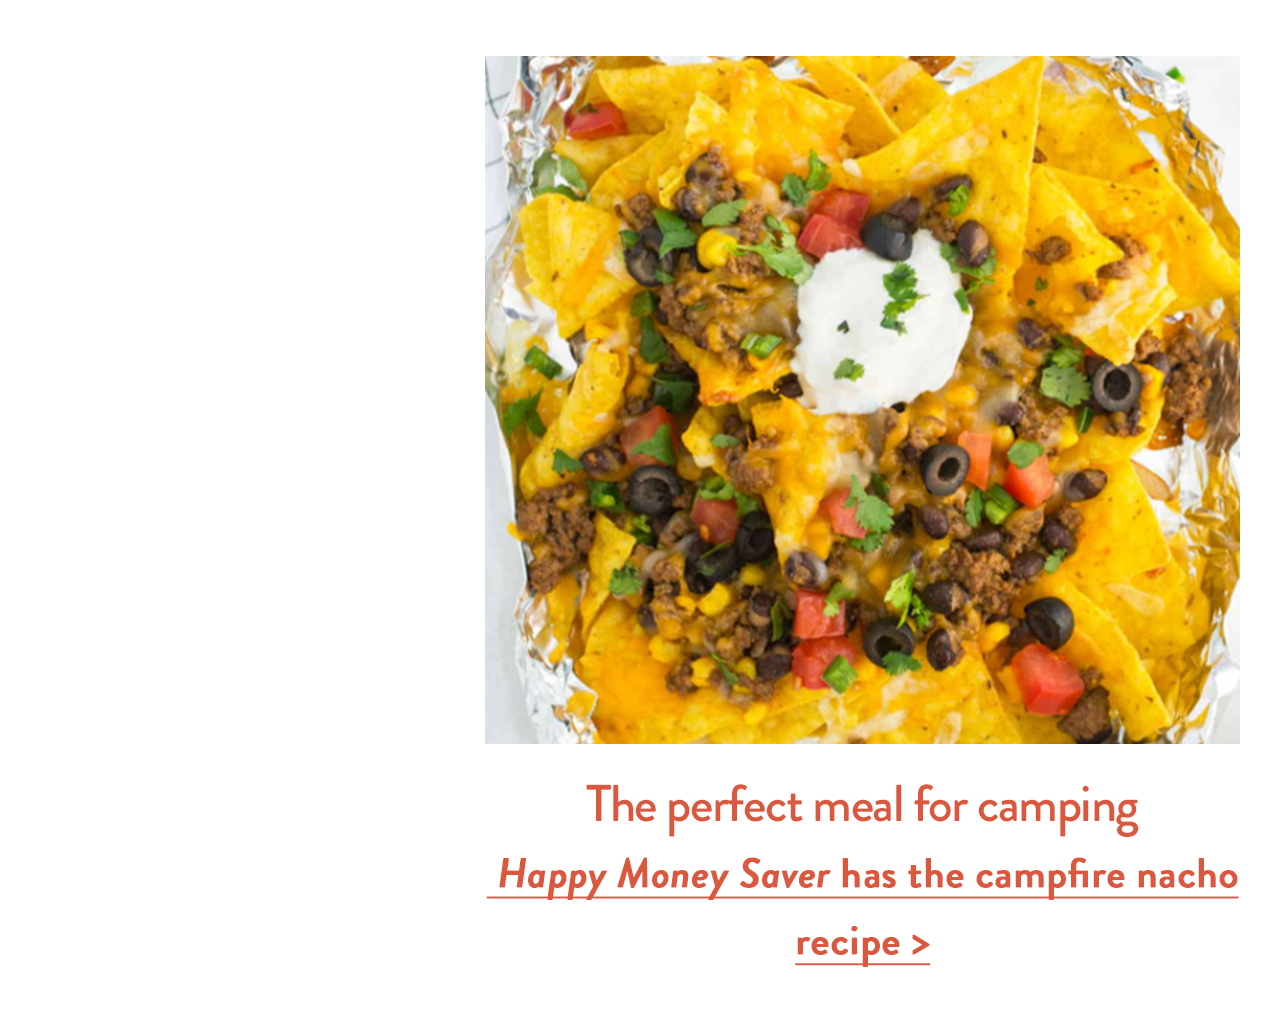 The perfect meal for camping